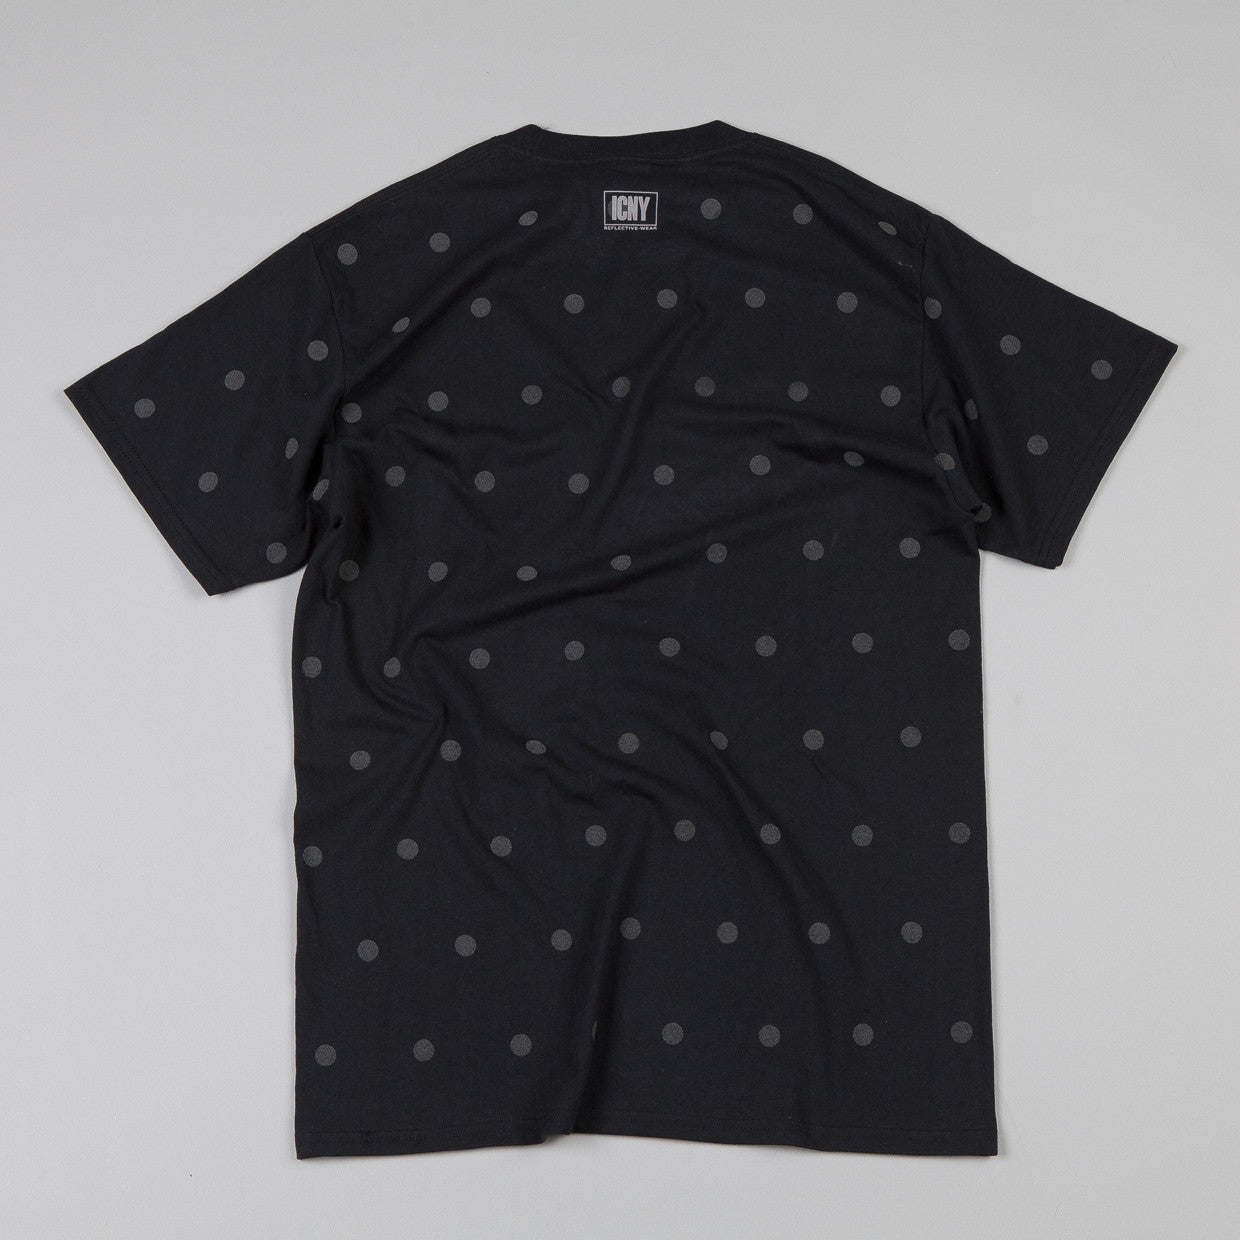 ICNY Polka Dot T Shirt Black